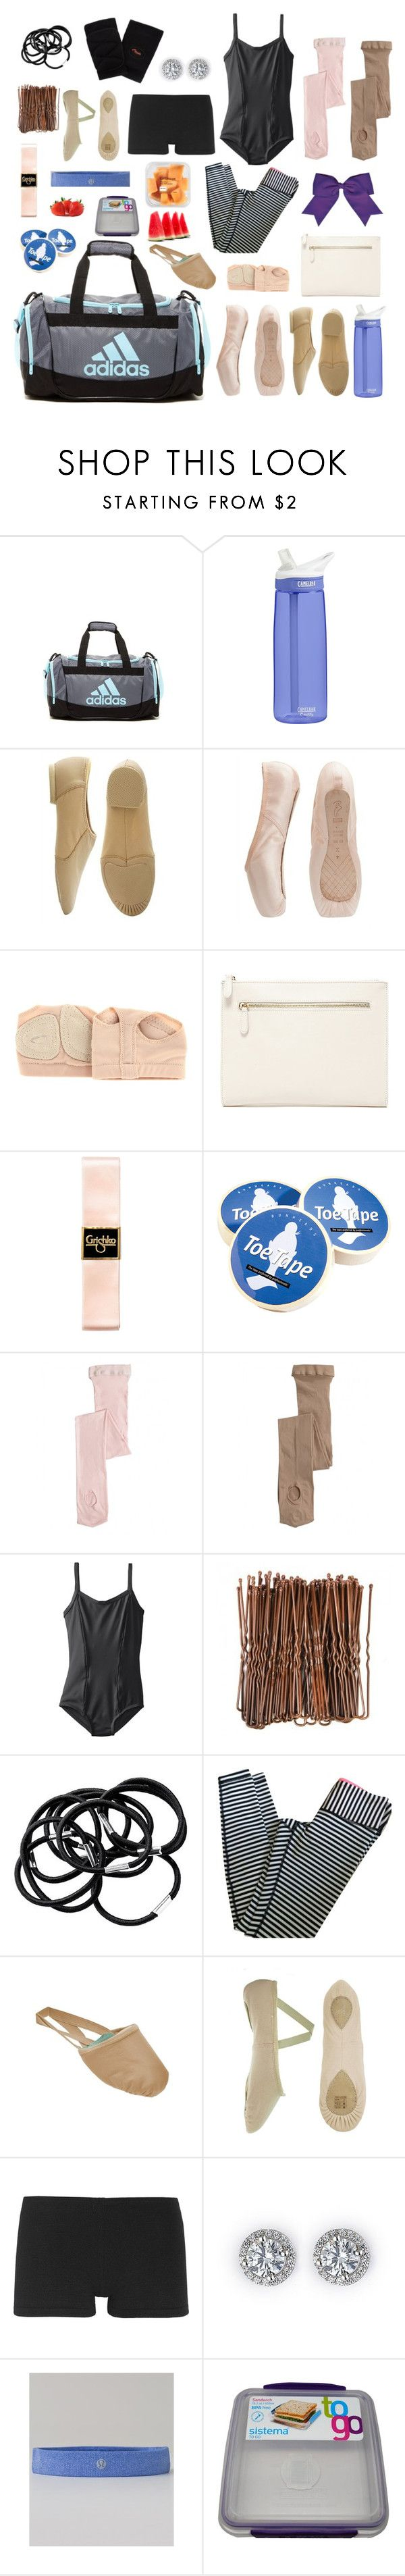 """""""In my dance bag"""" by izelaixchel ❤ liked on Polyvore featuring adidas, CamelBak, Bloch, Capezio, Forever 21, Chassè, H&M, lululemon, Ballet Beautiful and women's clothing"""